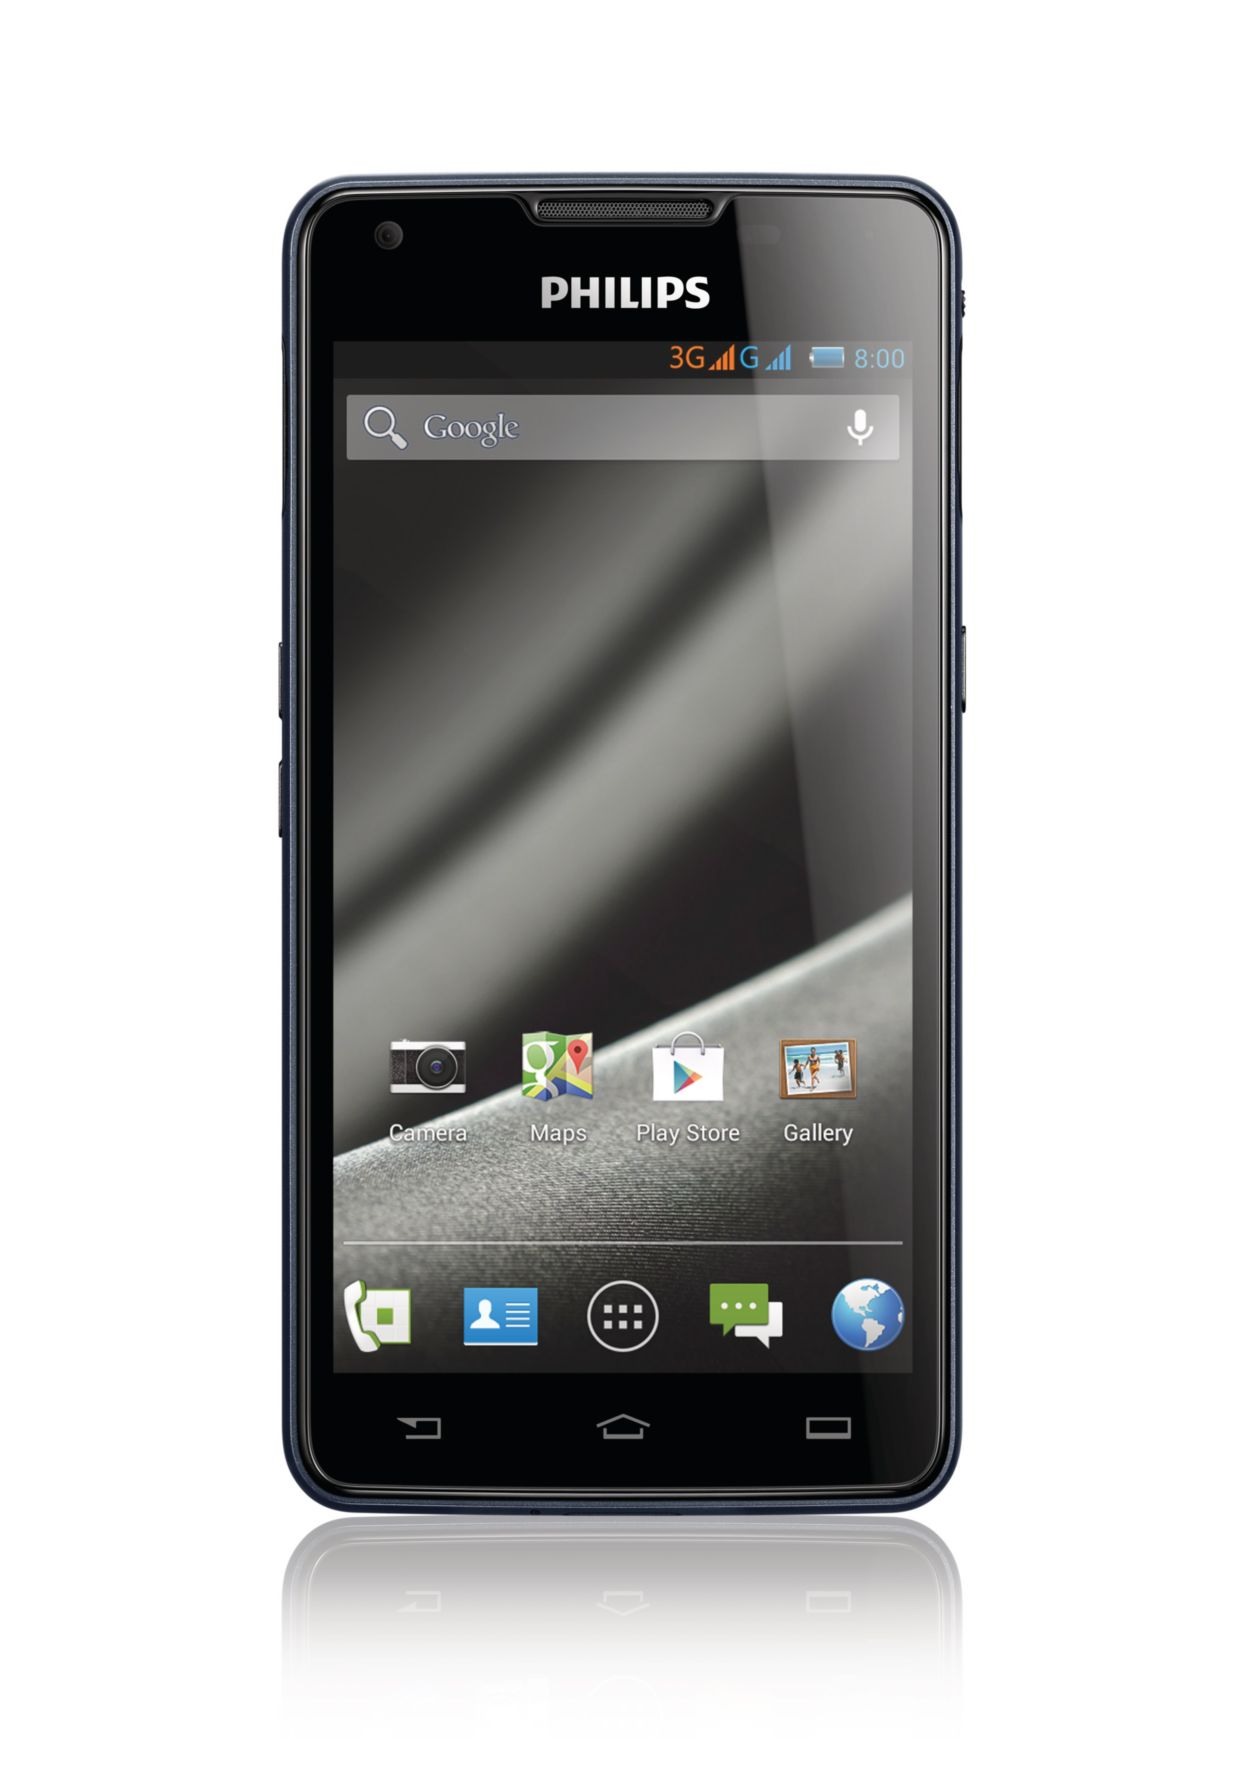 Phone Philips Android Phone xenium smartphone ctw6610ny94 philips charged for life